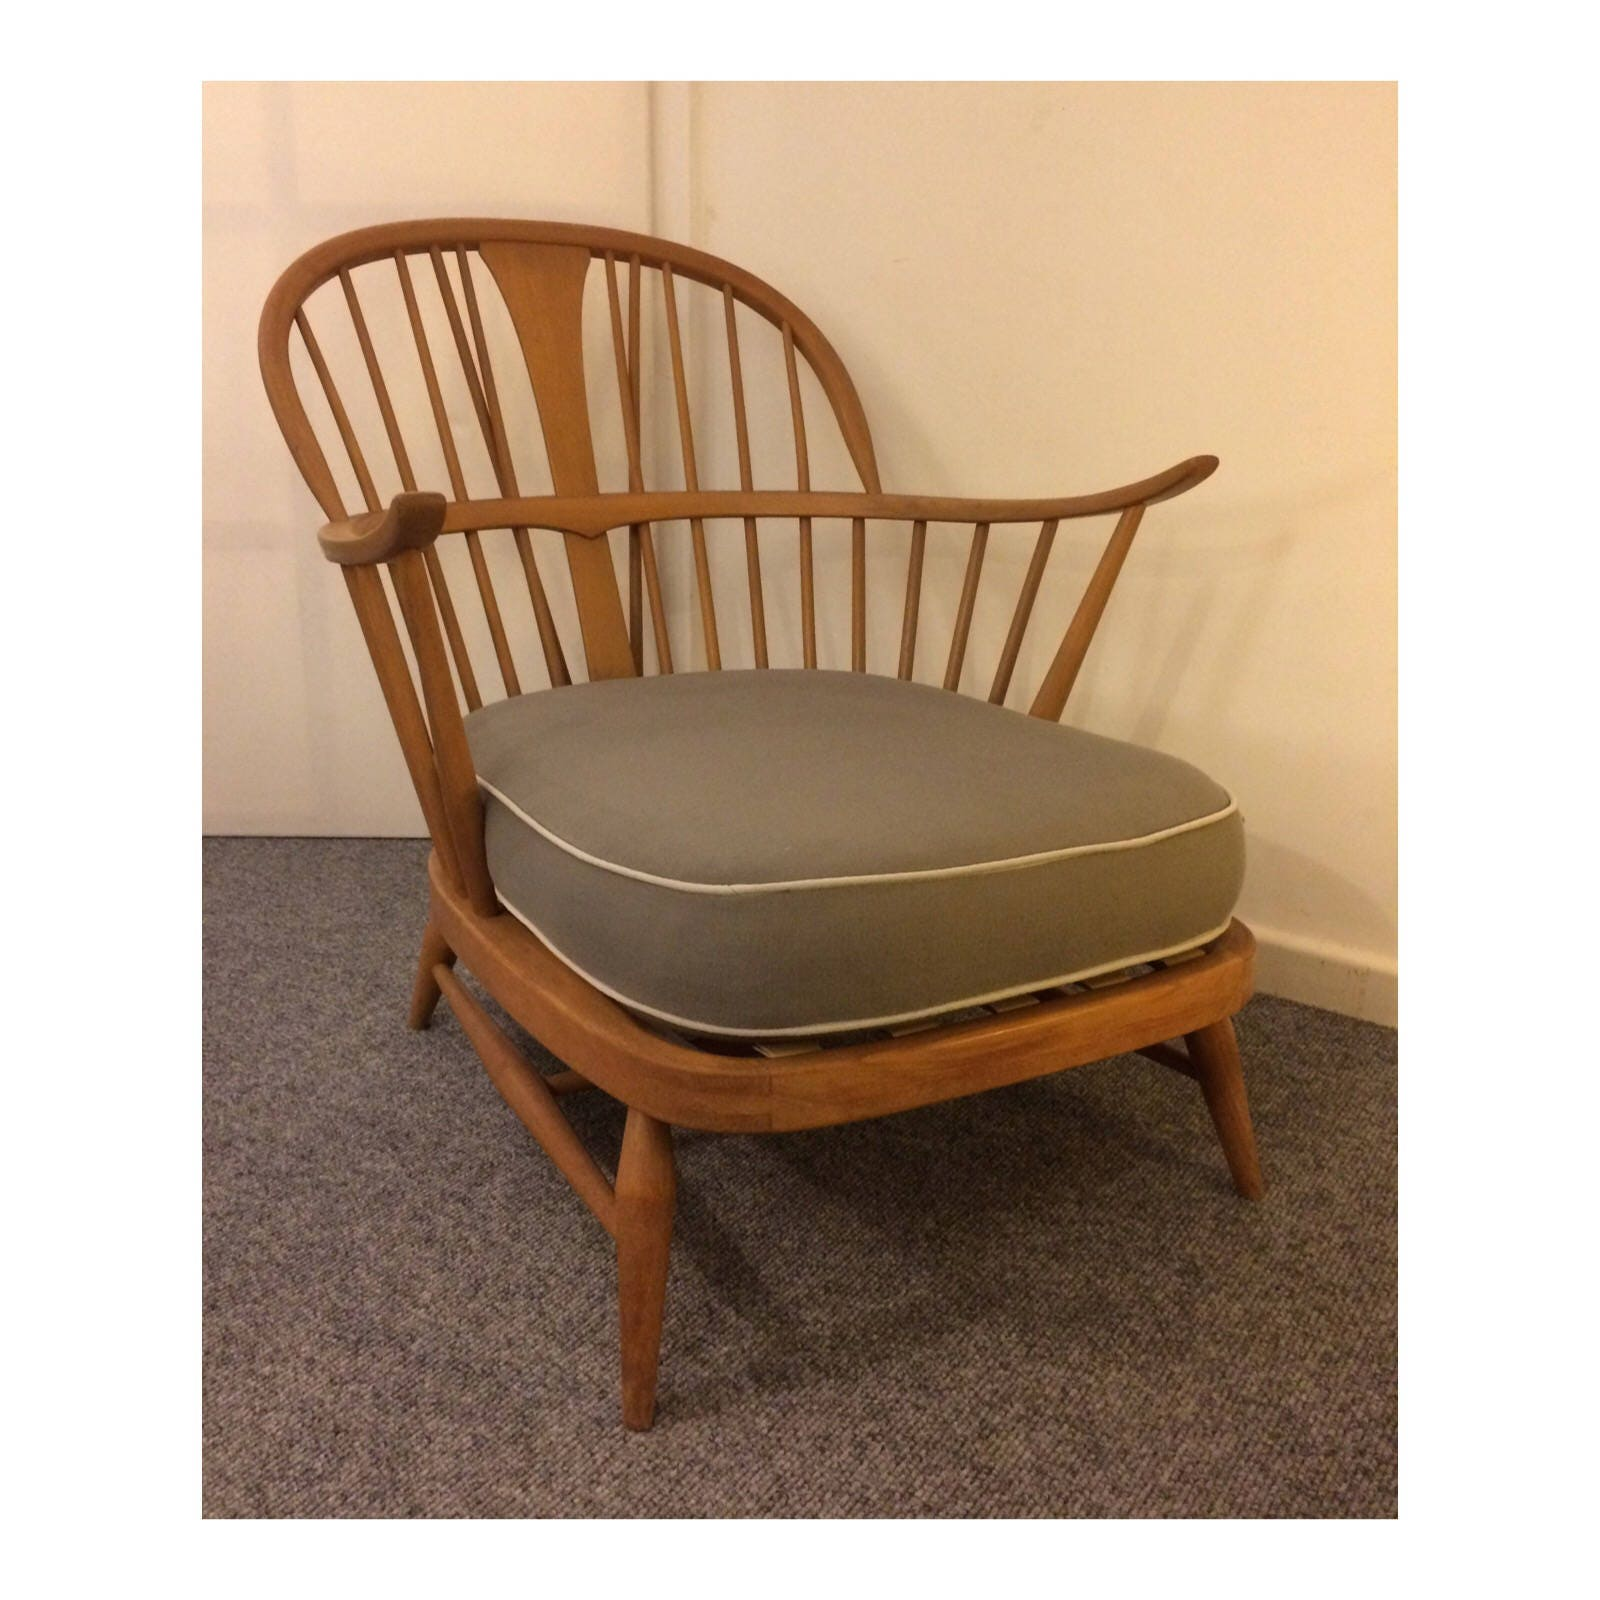 Rare Ercol Easy Chair Model 501